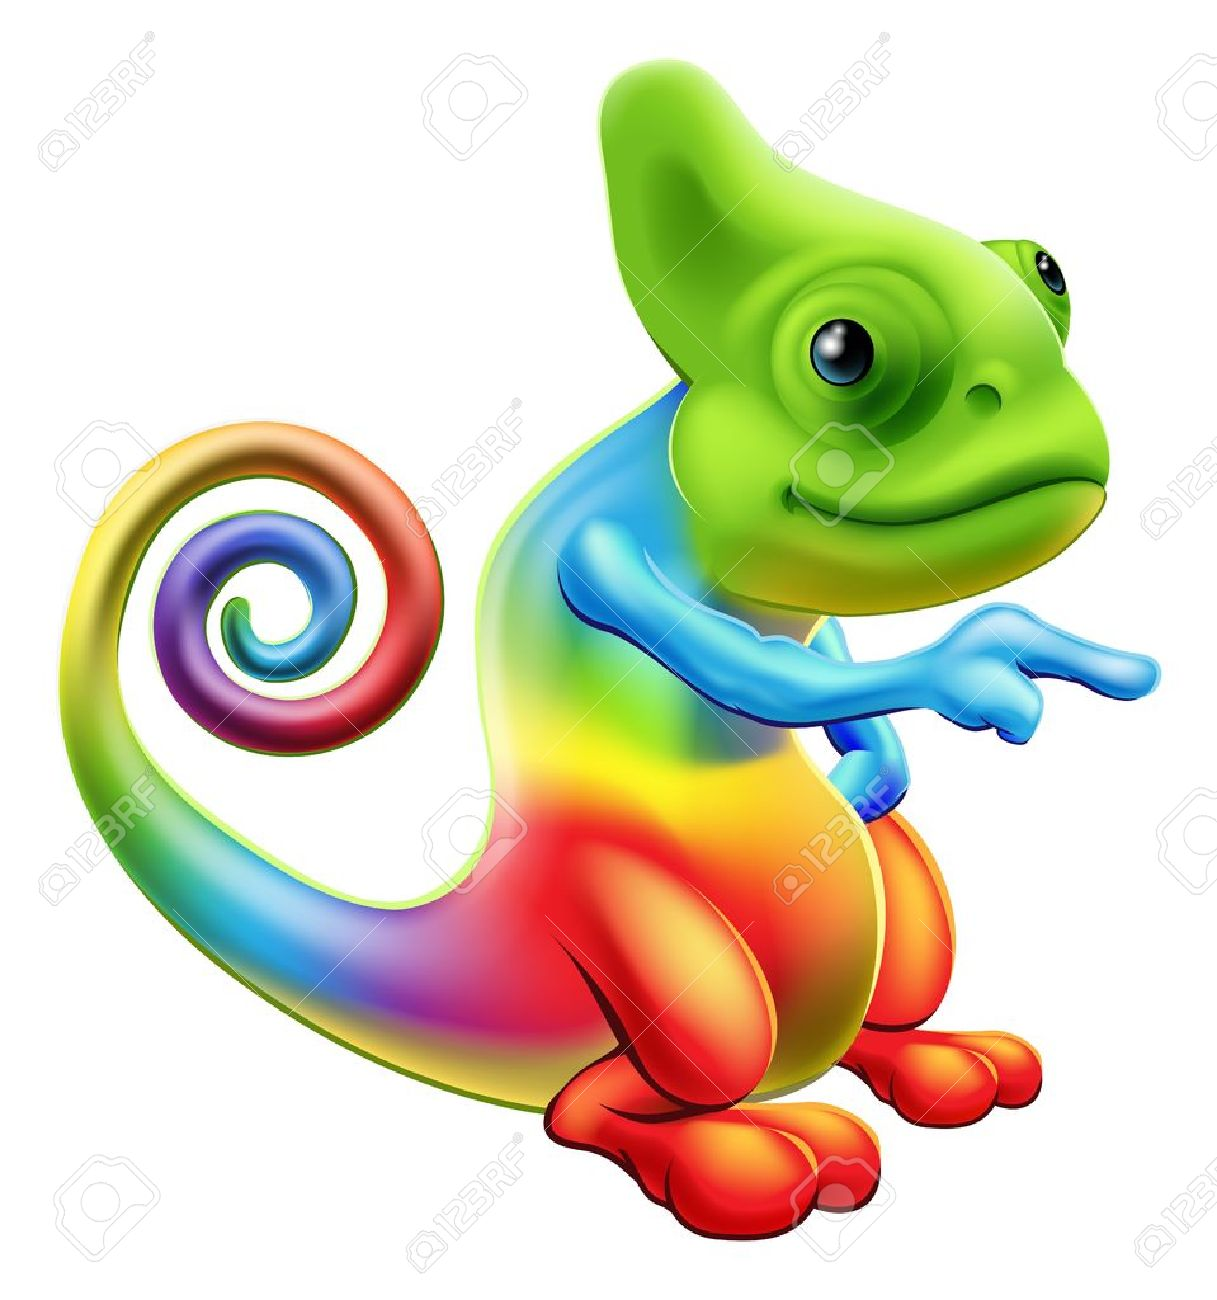 3,164 The Chameleon Stock Vector Illustration And Royalty Free The.